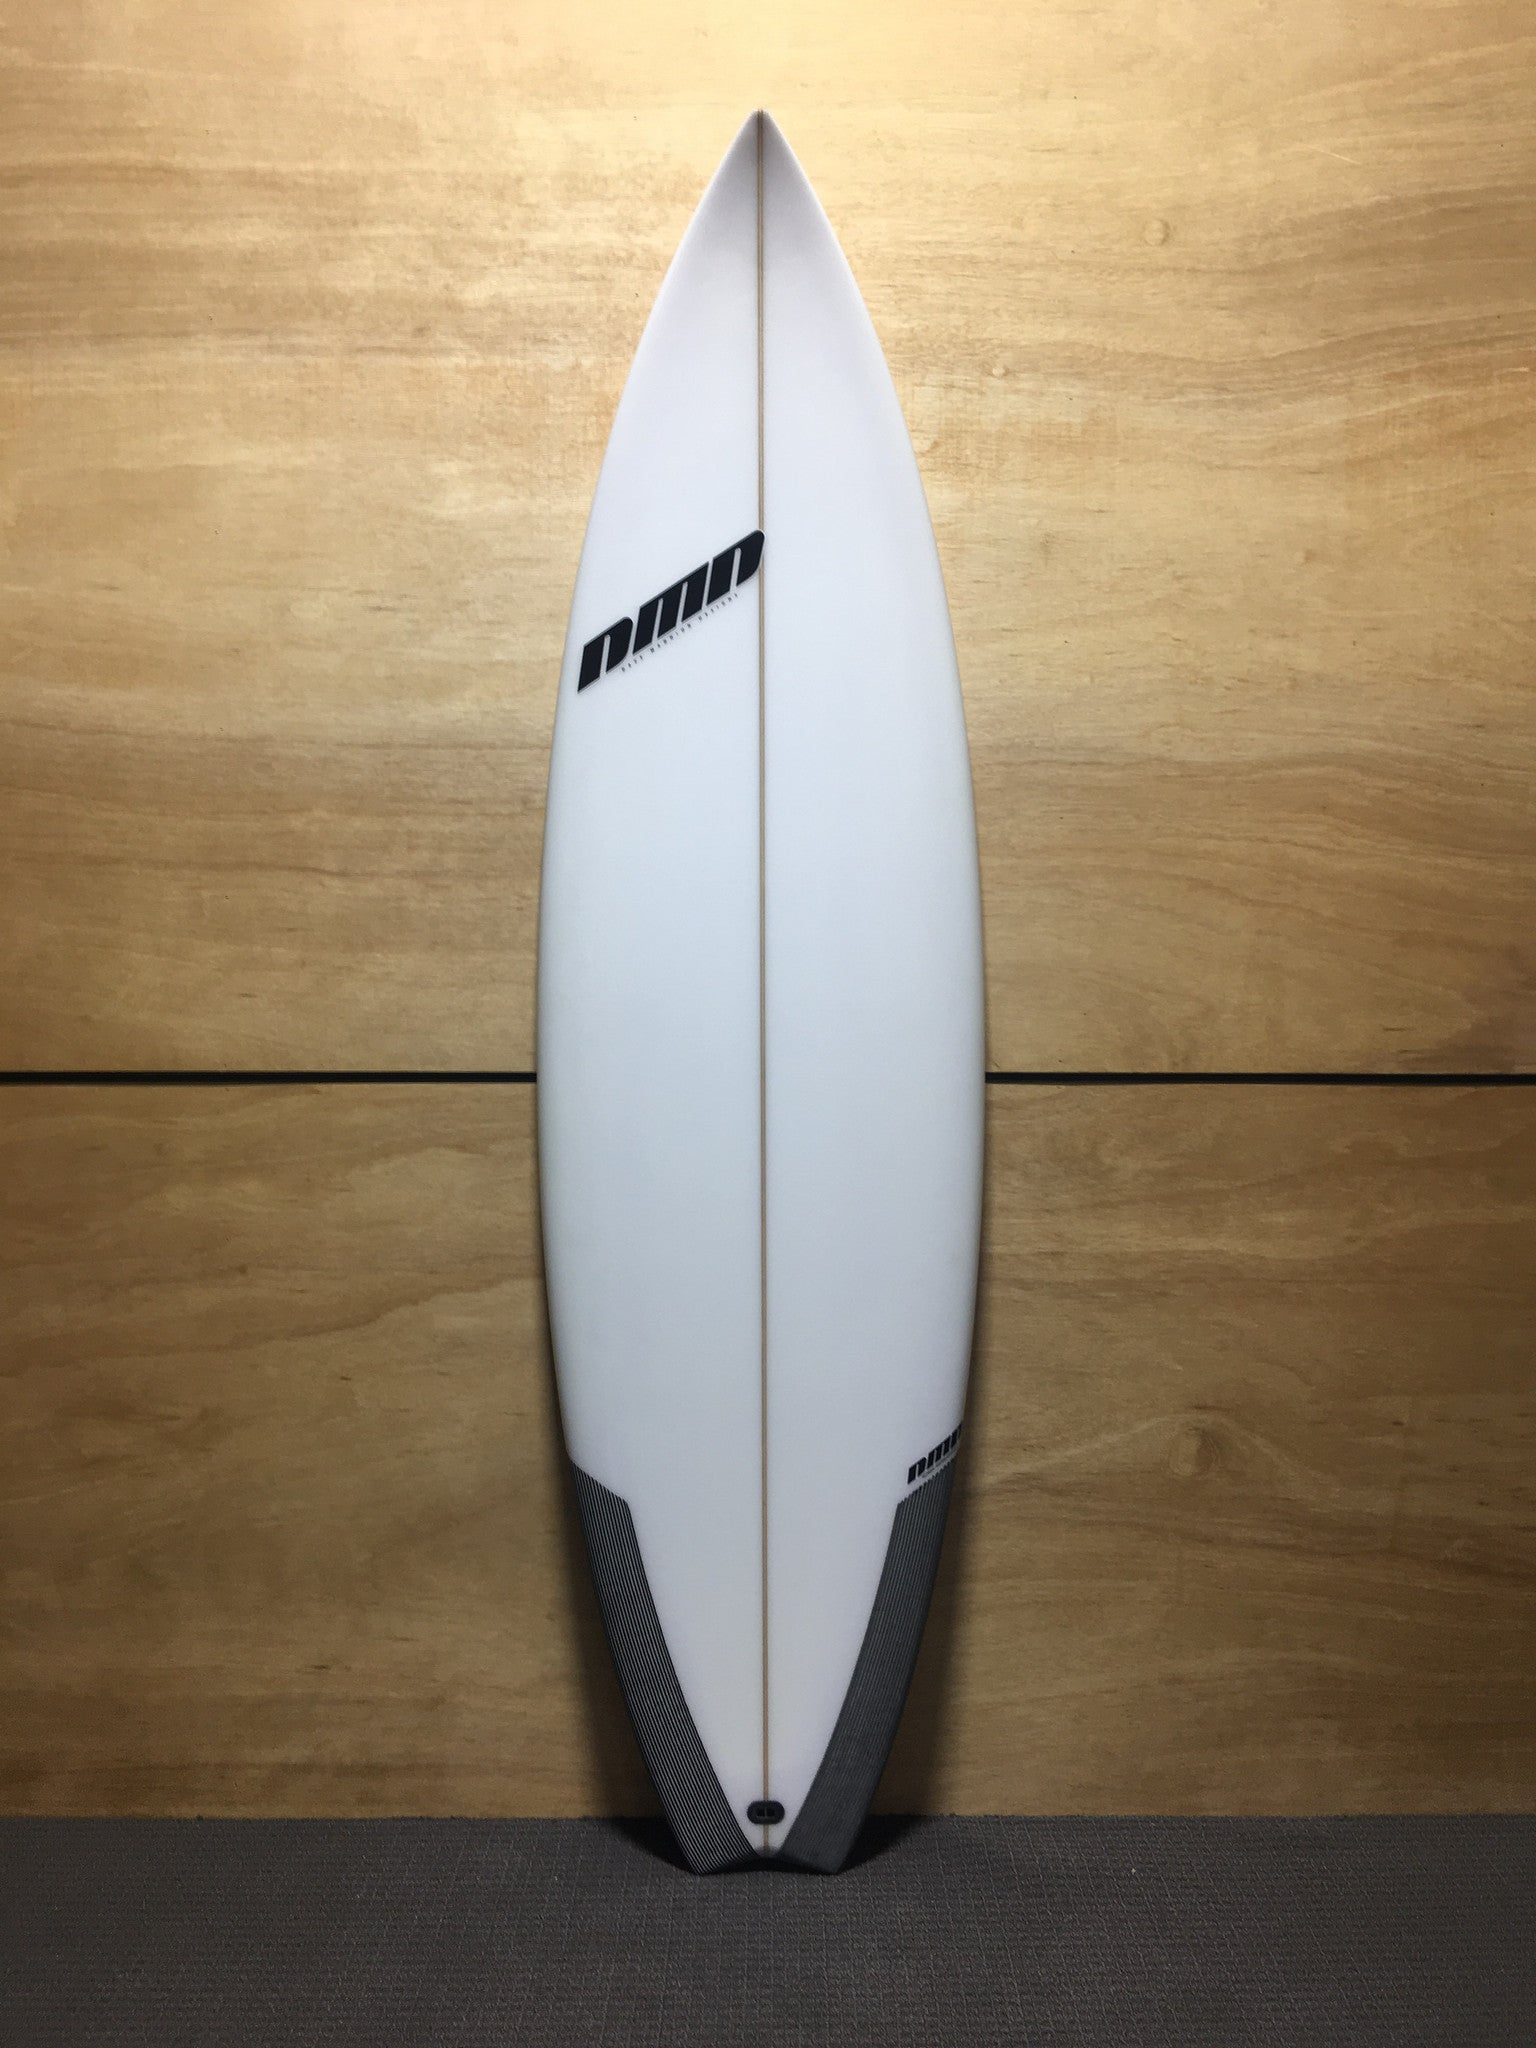 DMD D-Train - Board Store DMDsurfboard